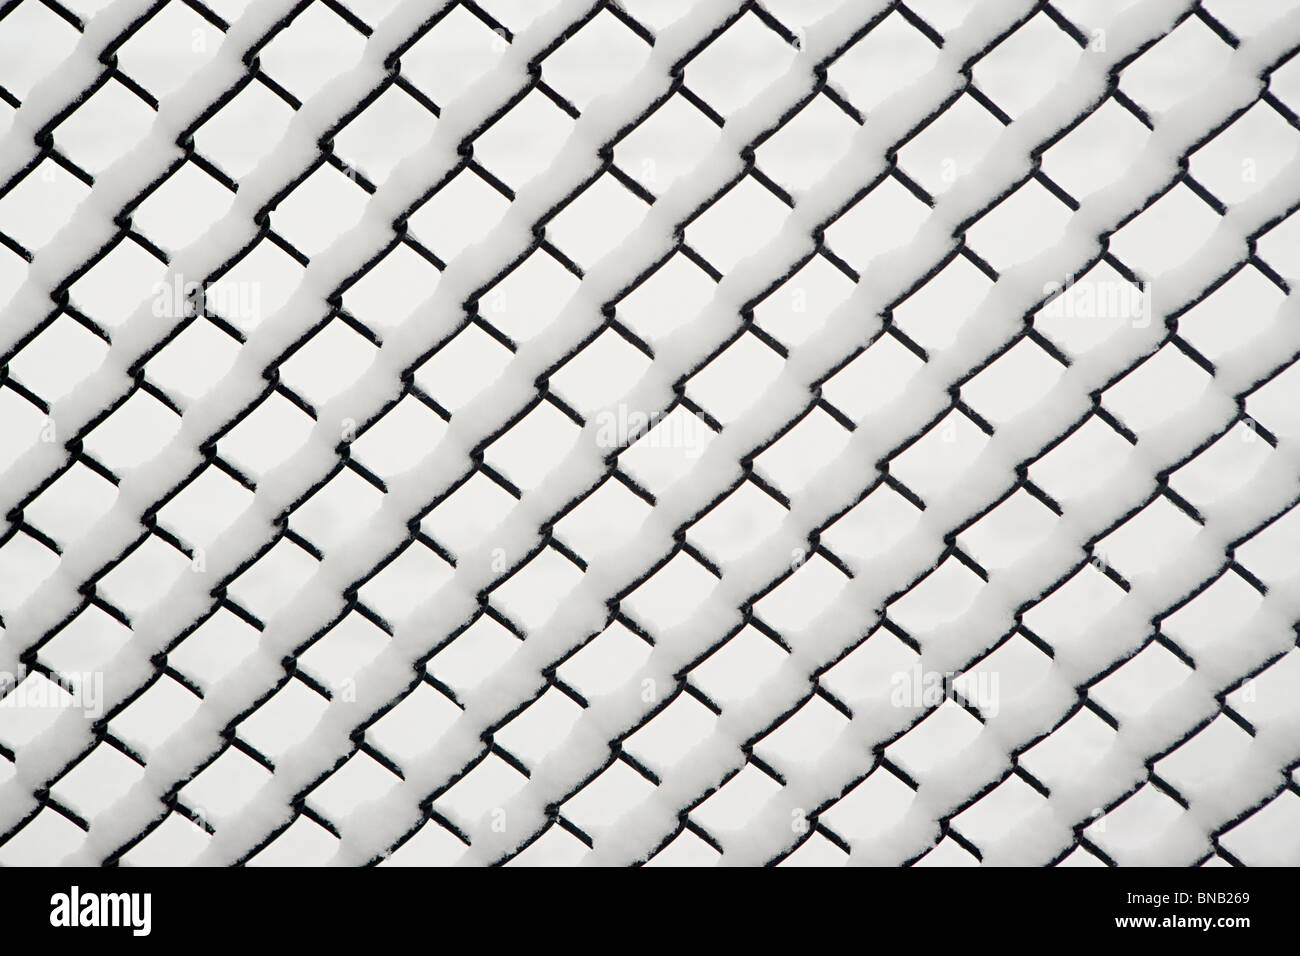 Snow on a chain link fence - Stock Image